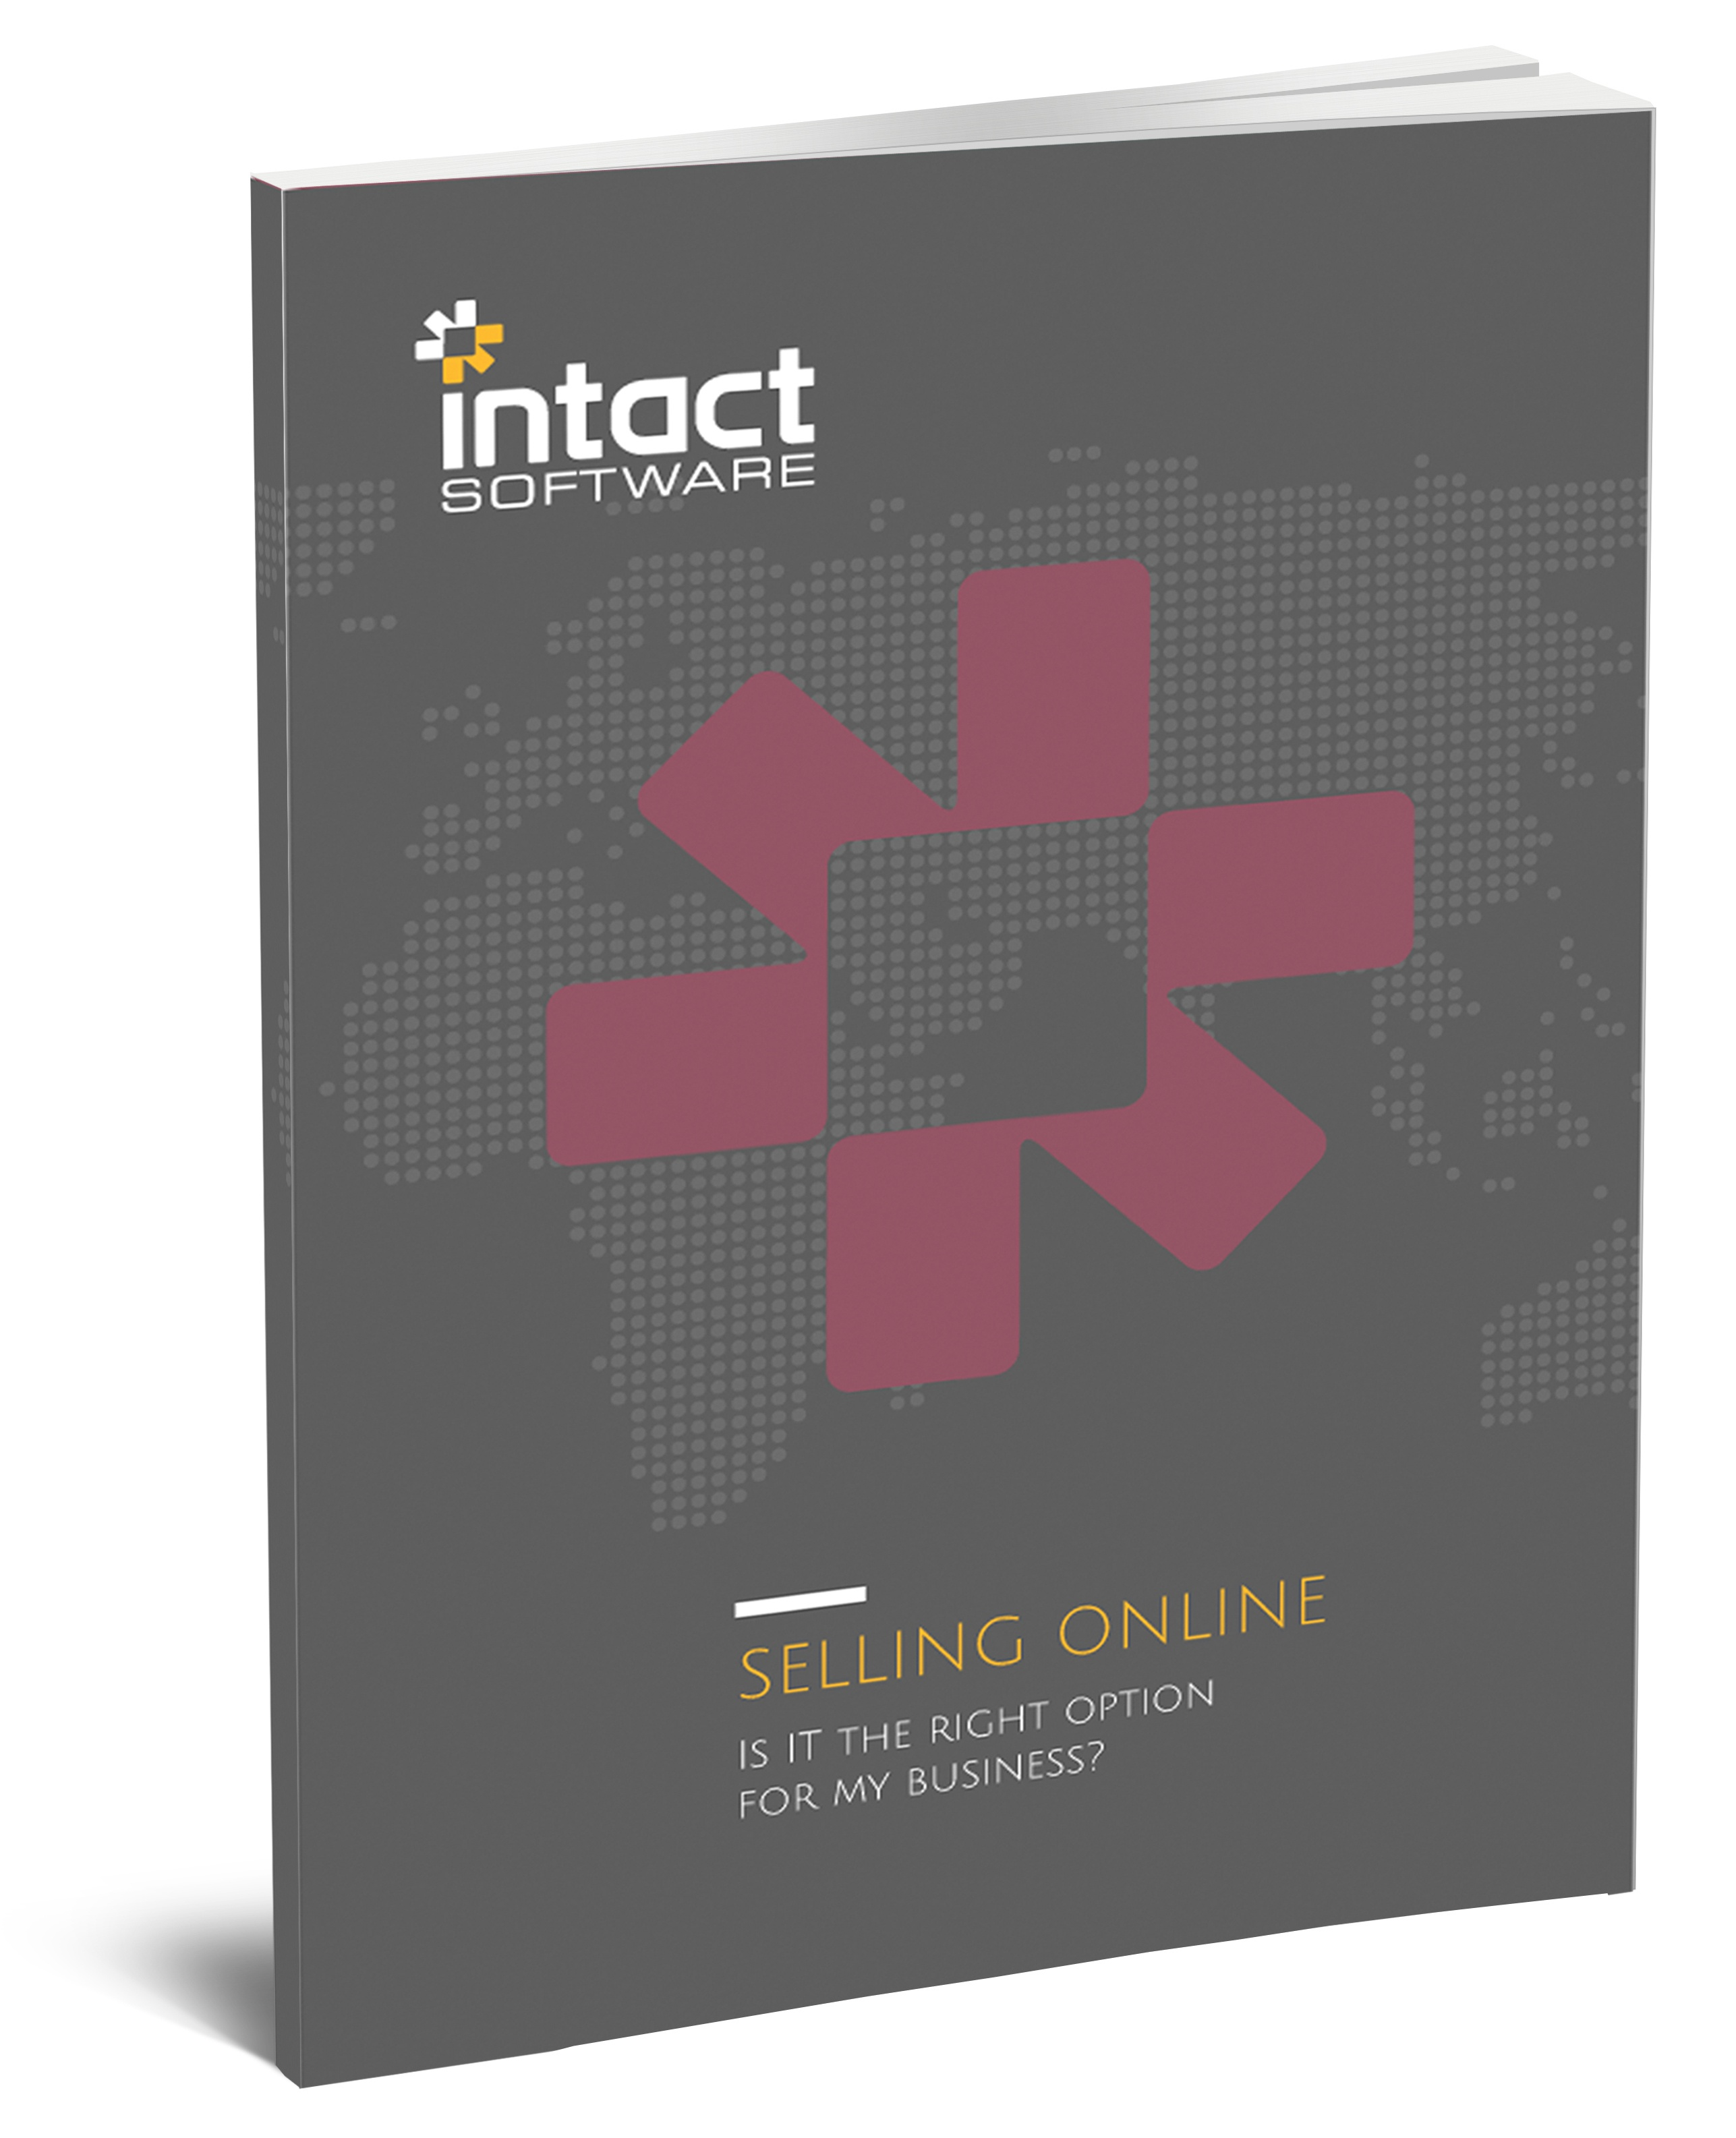 Selling online_Intact Insights-1.jpg